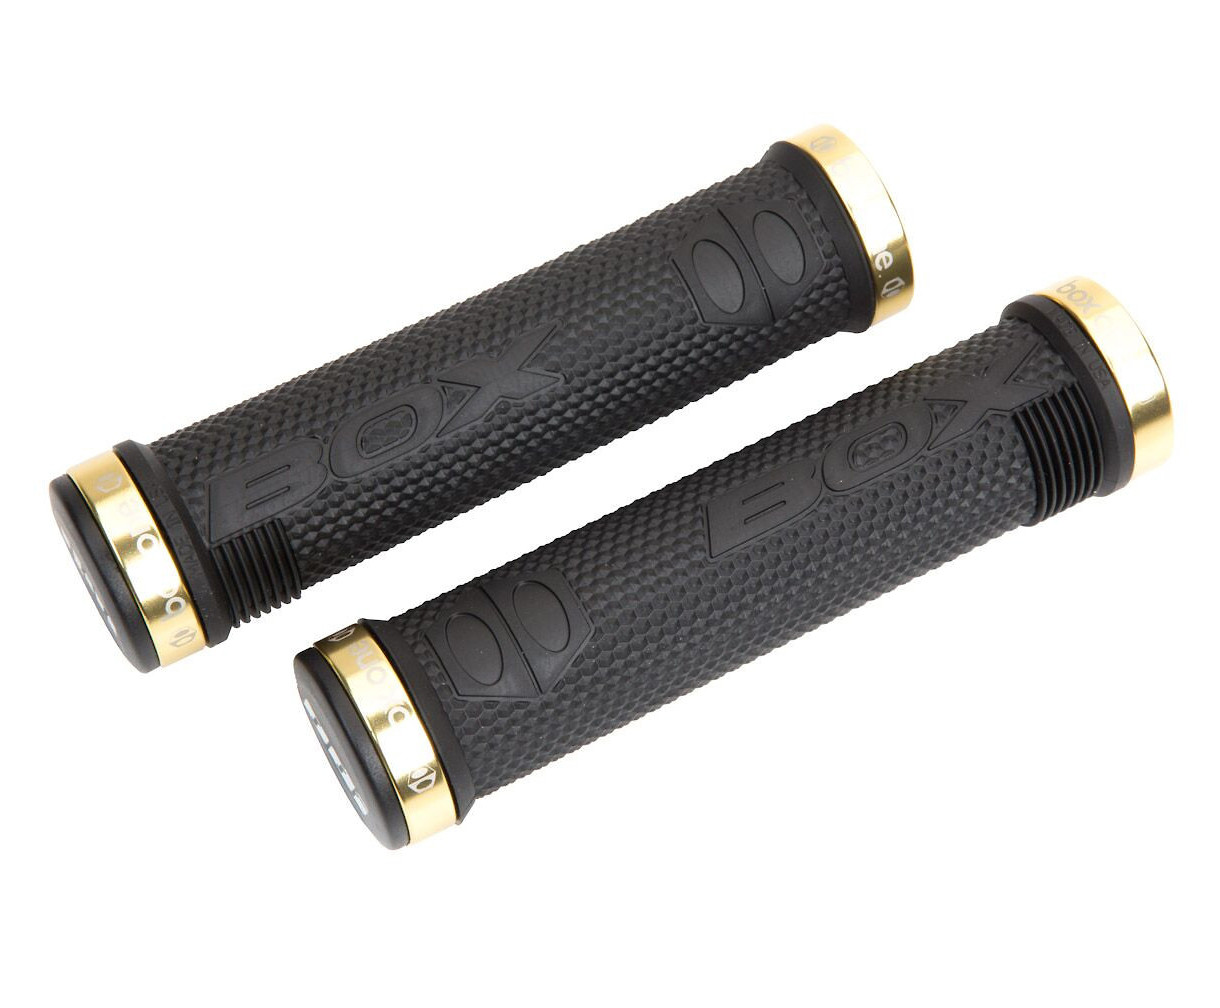 Box One Grips (gold)